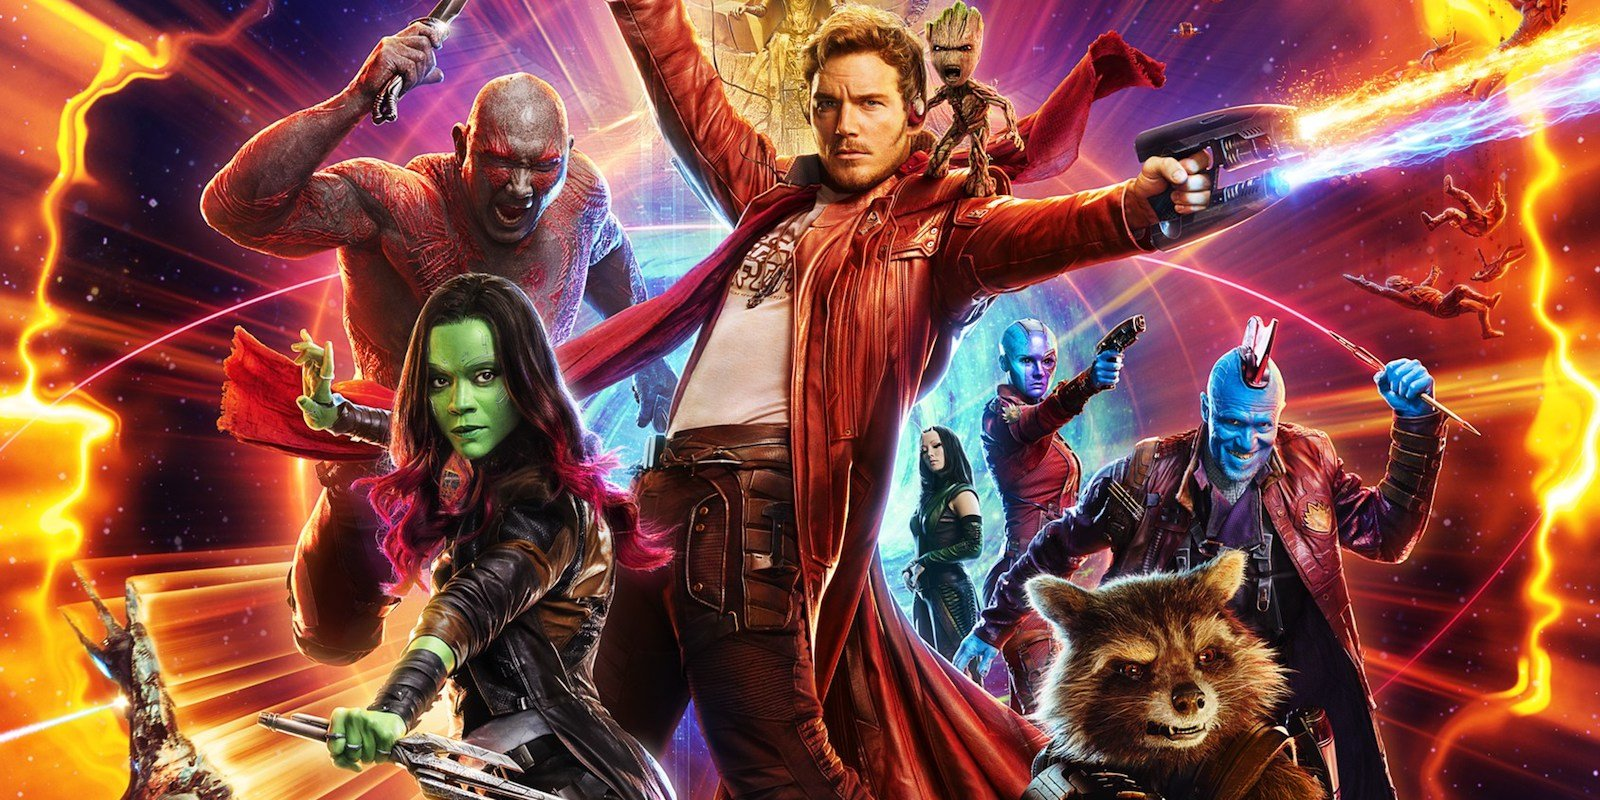 GUARDIANS OF THE GALAXY VOL 2 FİLMİ,GUARDIANS OF THE GALAXY VOL 2 FİLMİ HAQQINDA FİKİRLƏR